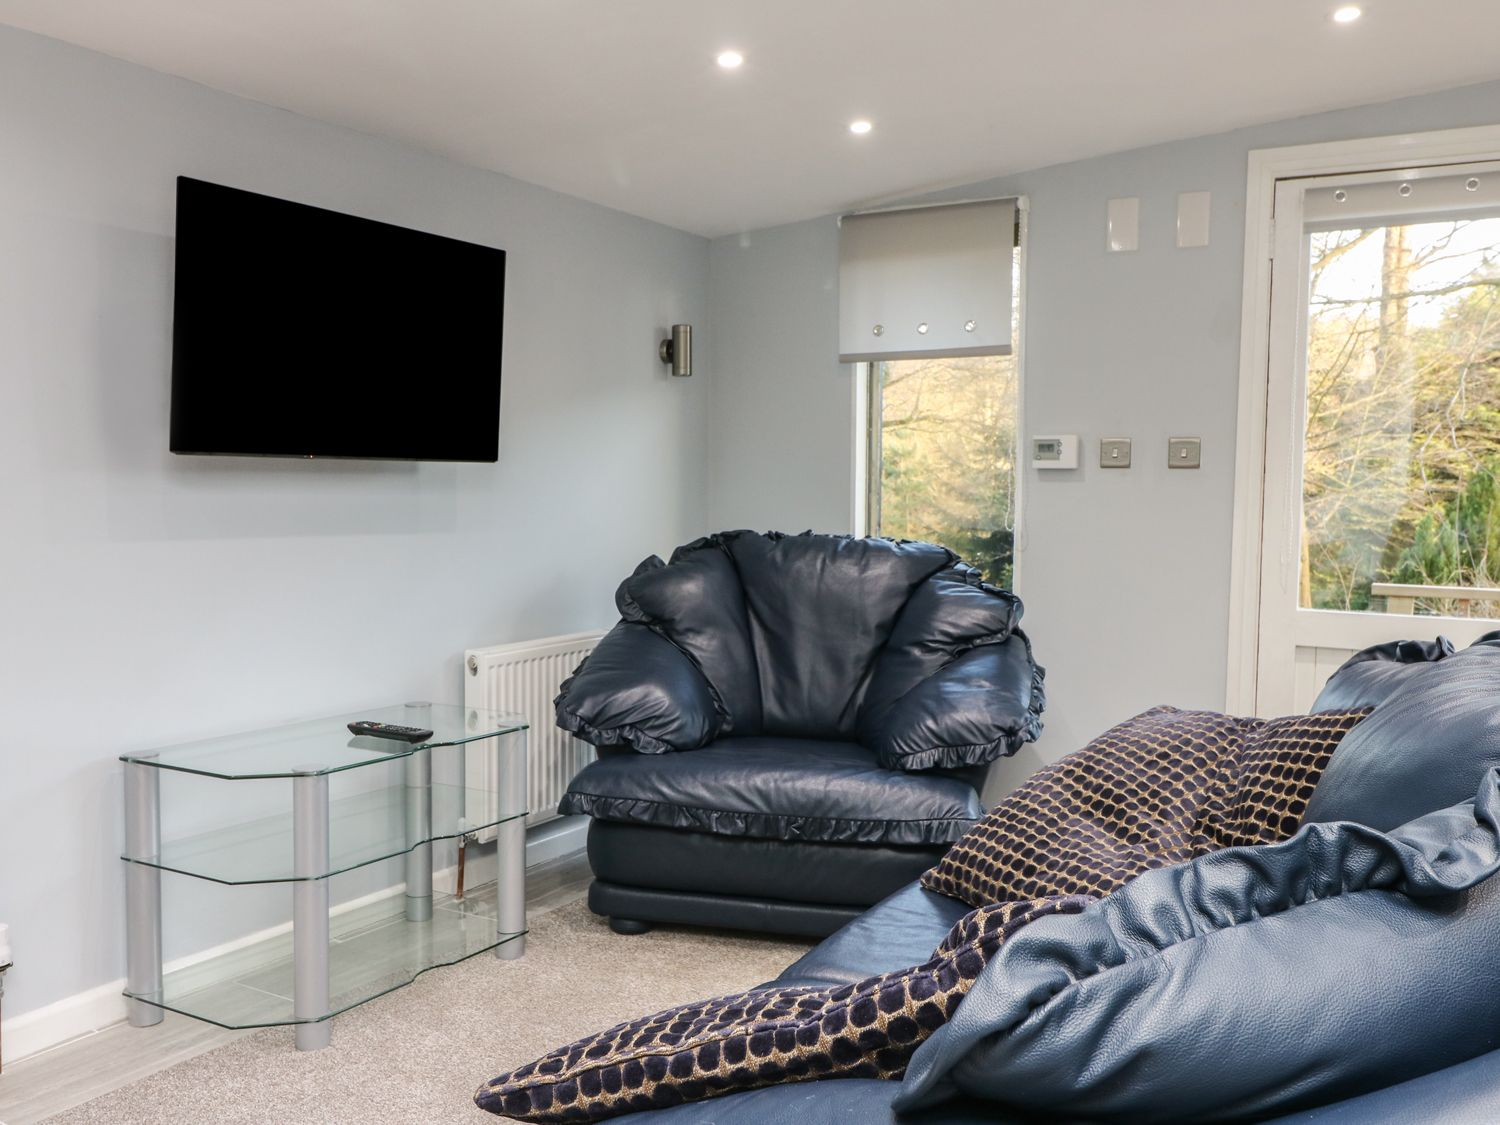 The Lodge in Culverstone Green near Chatham - sleeps 4 people